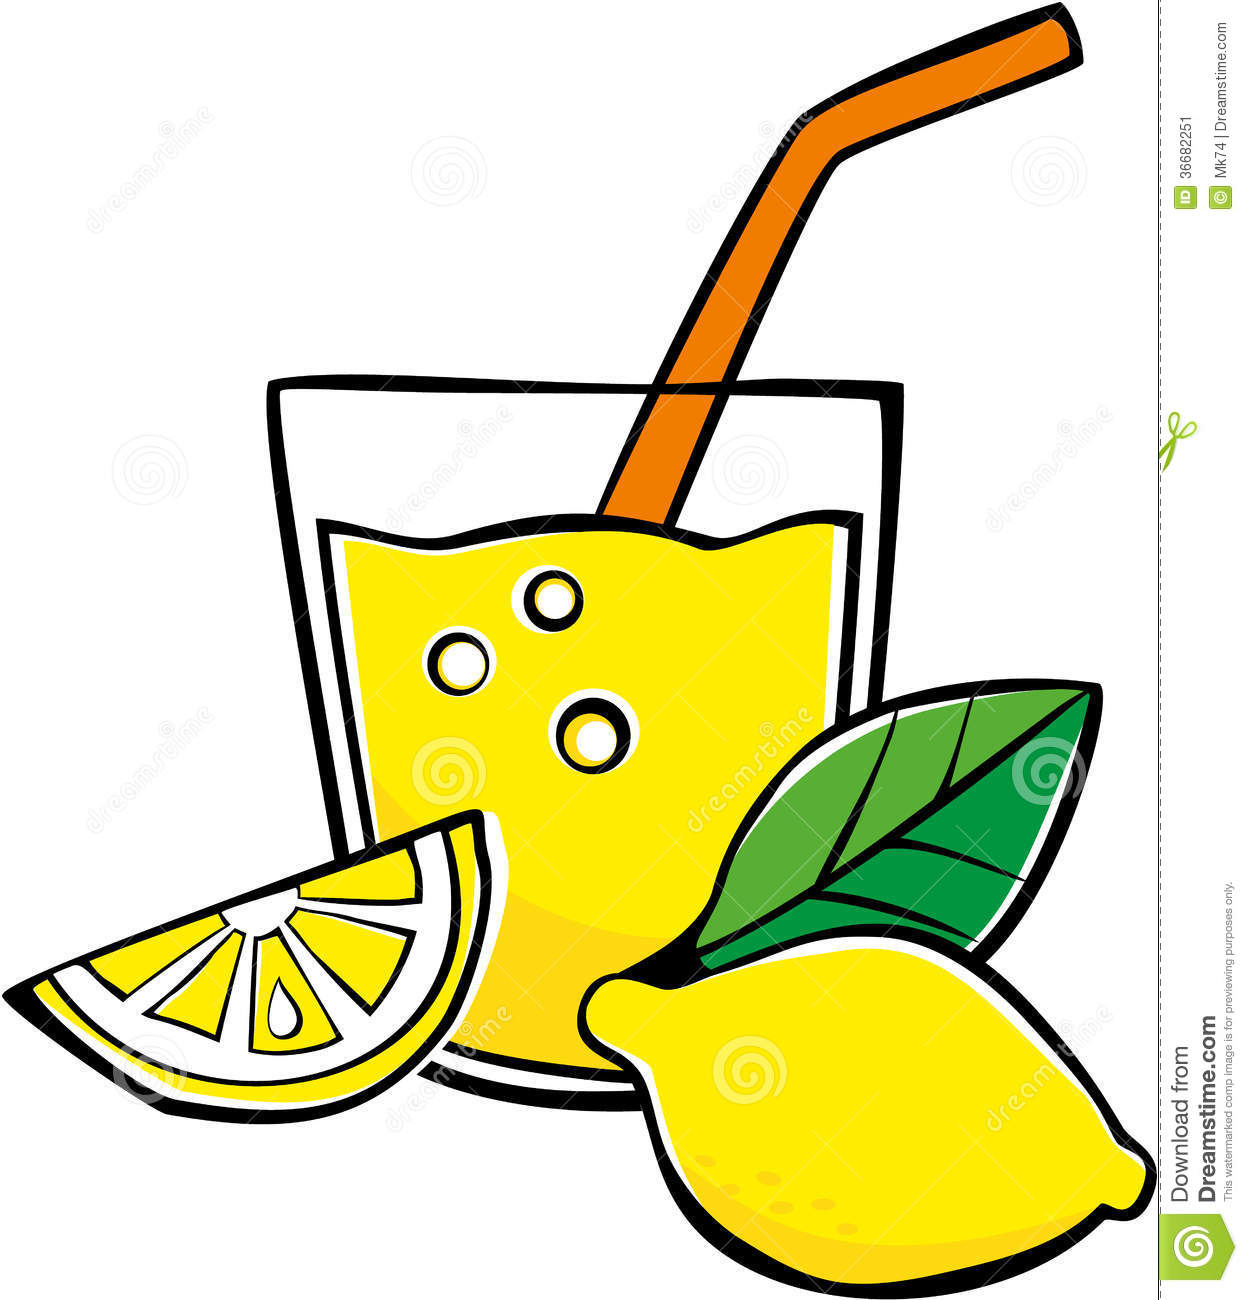 Stockbild Limonade Image36682251 together with Coffee Mug Pictures also 32423052399 additionally 2008 April 27 Wearing A Cup as well Kaffee Schwarz Heis D f Bohnen. on cartoon cup